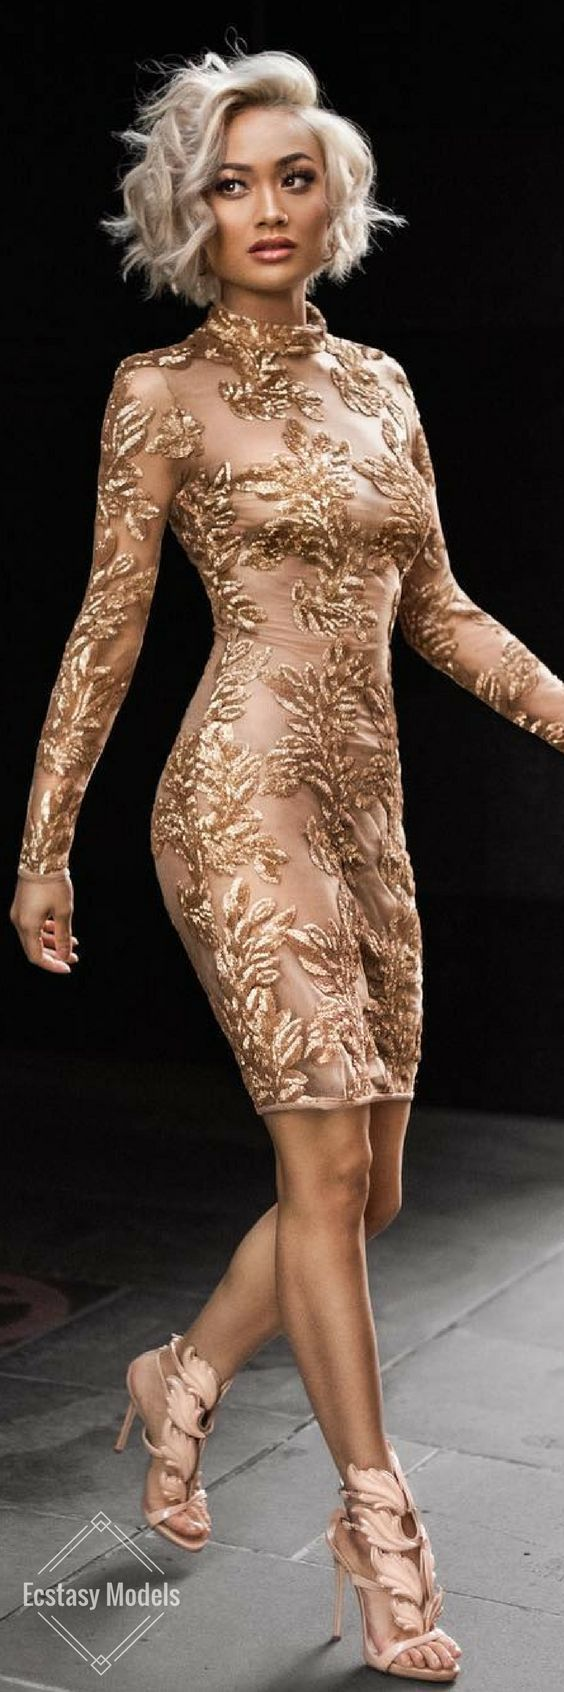 Golden Glam // Dress by houseofcb // Fashion Look by Micah Gianneli